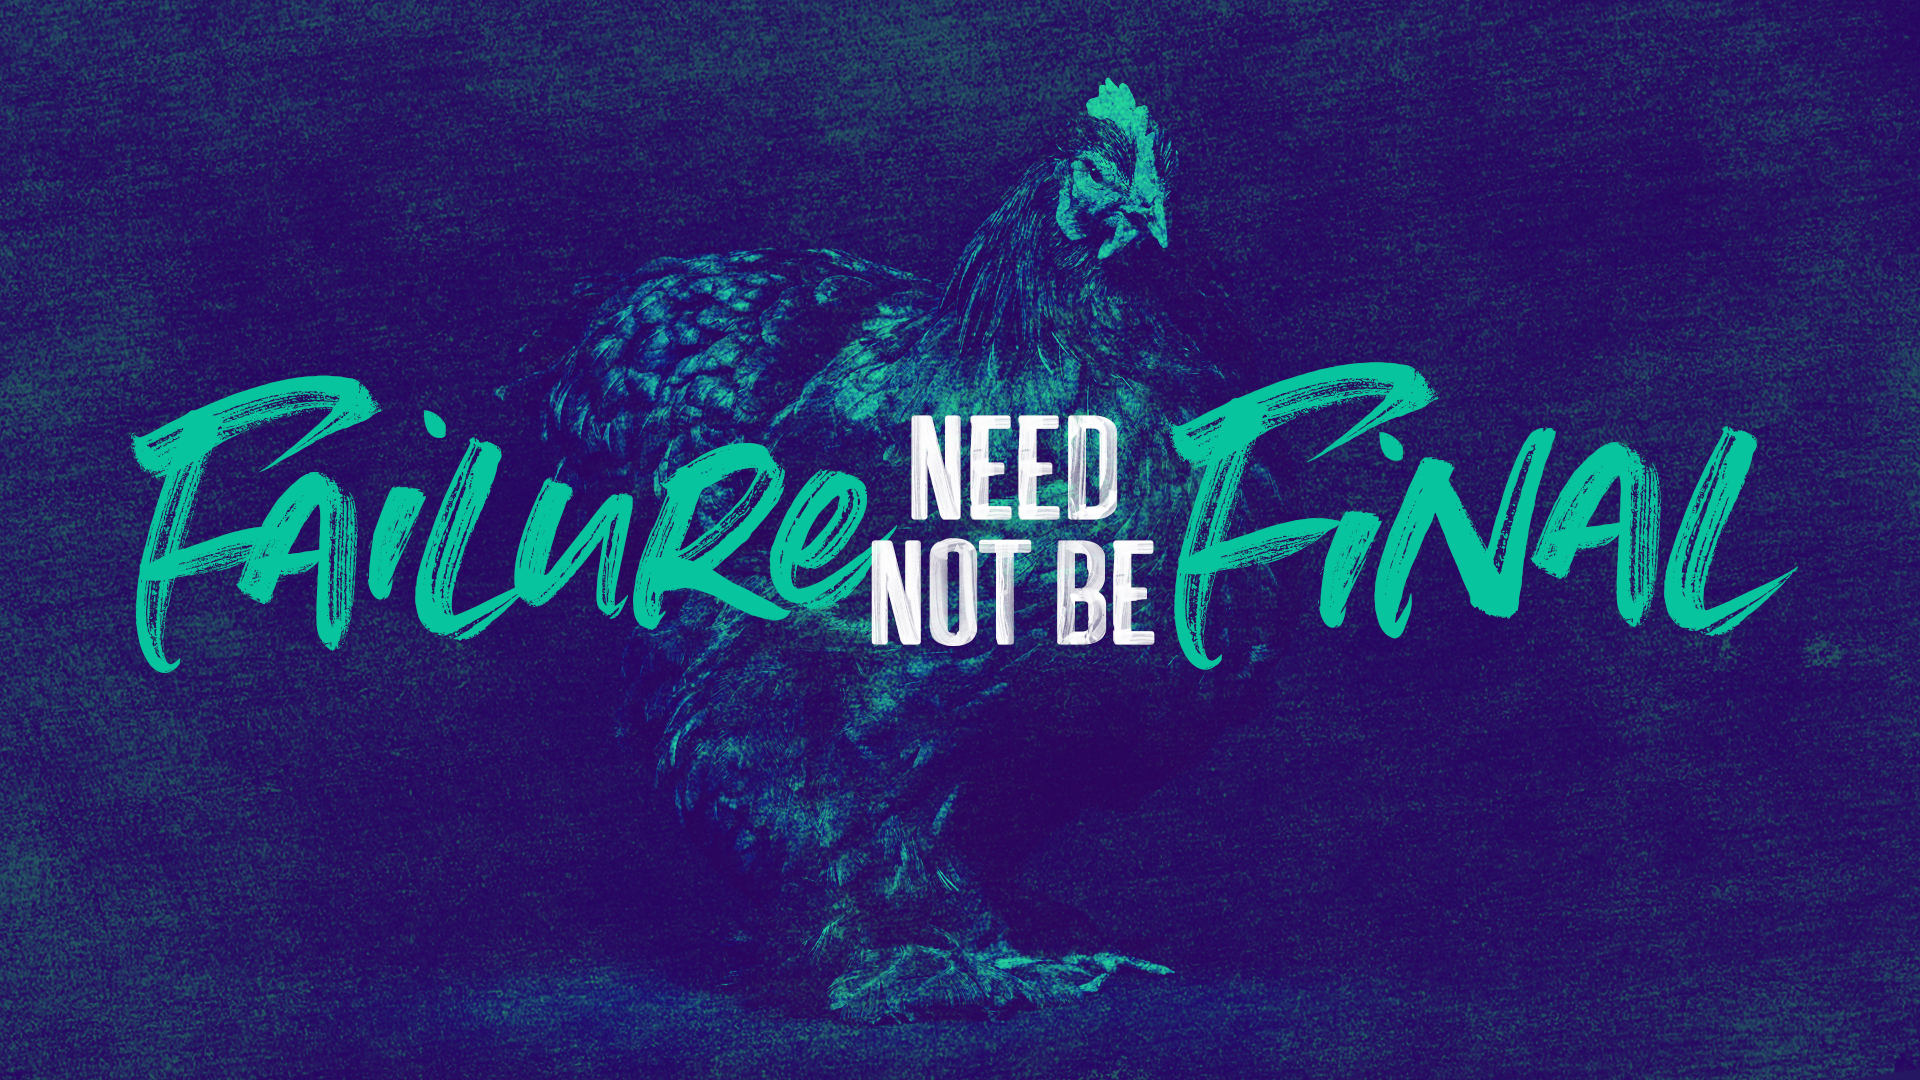 Failure Need Not Be Final